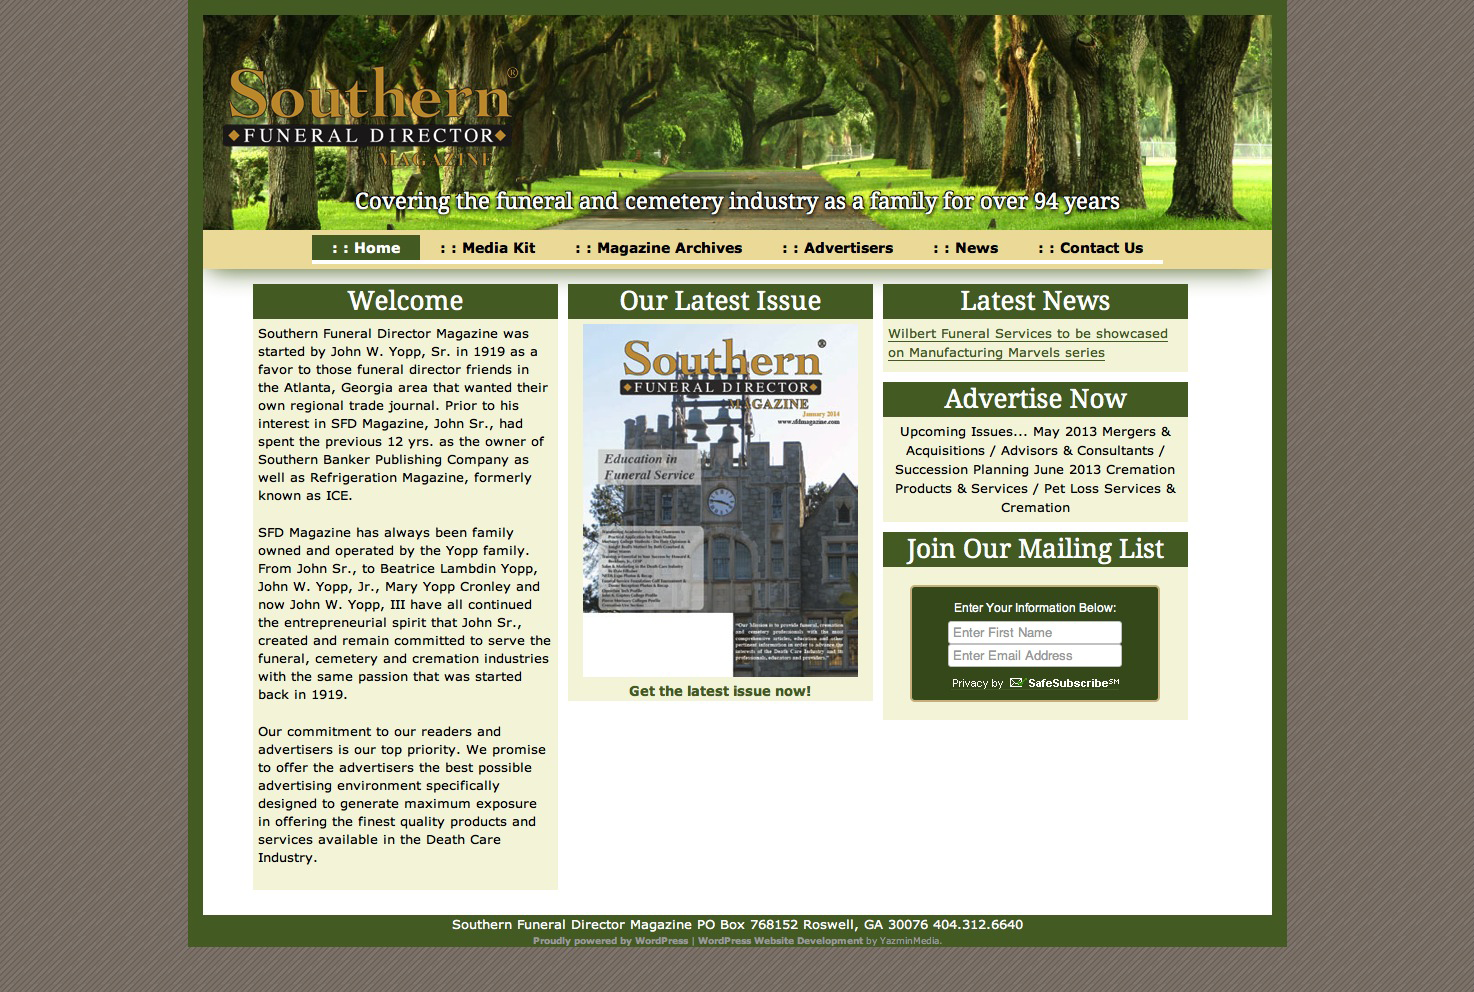 Website Migration: Southern Funeral Director Magazine